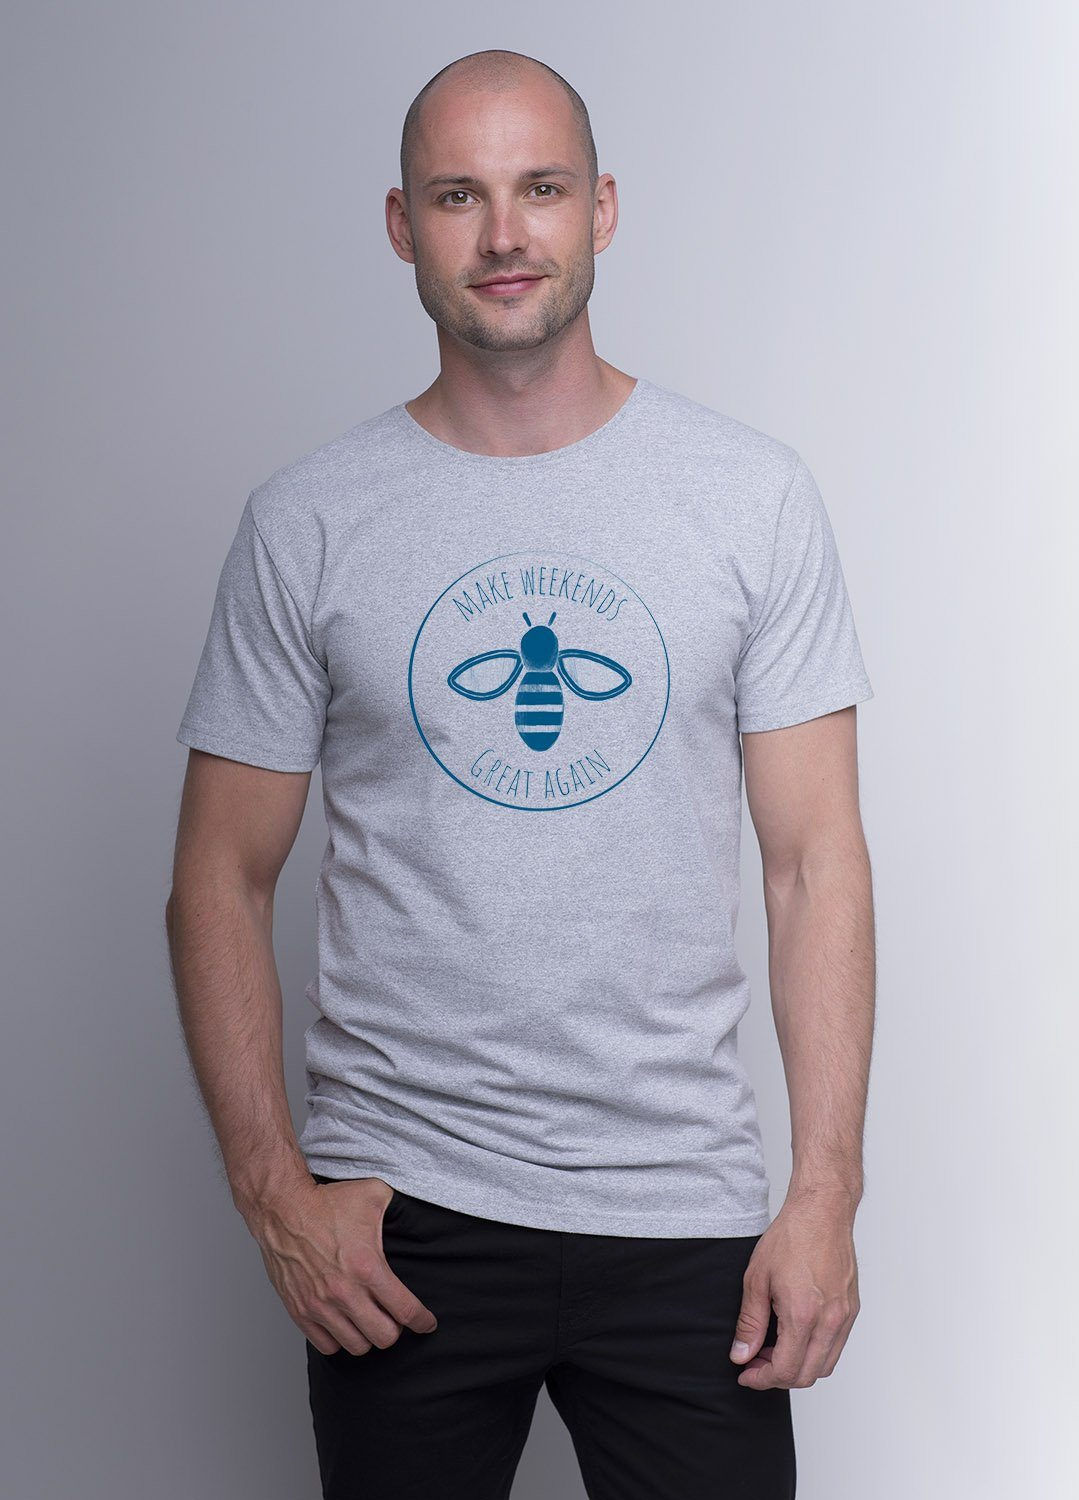 Weekendbee - Men's Make Weekends Great Again - T-Shirt - Grey - Weekendbee - sustainable sportswear